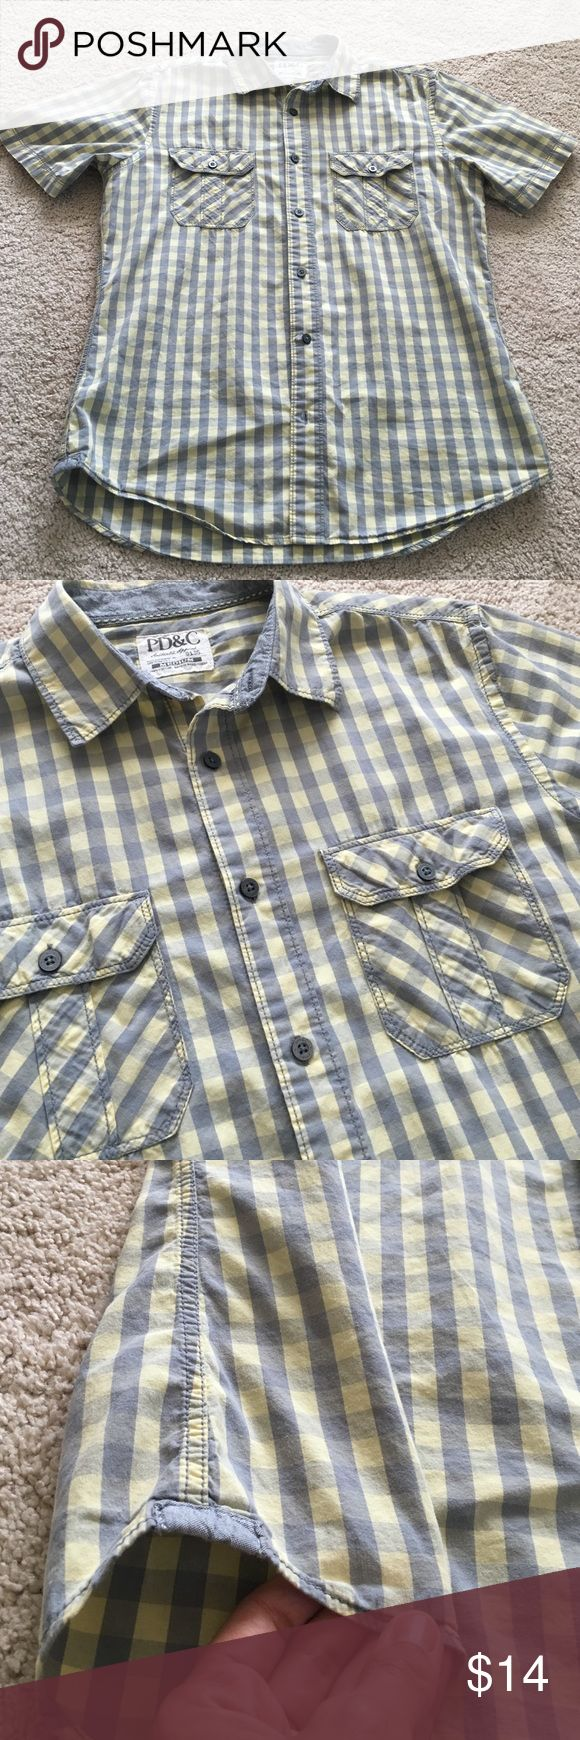 Men's Plaid Shirt Yellow and Grey cotton shirt. Good condition. PD&C Shirts Casual Button Down Shirts